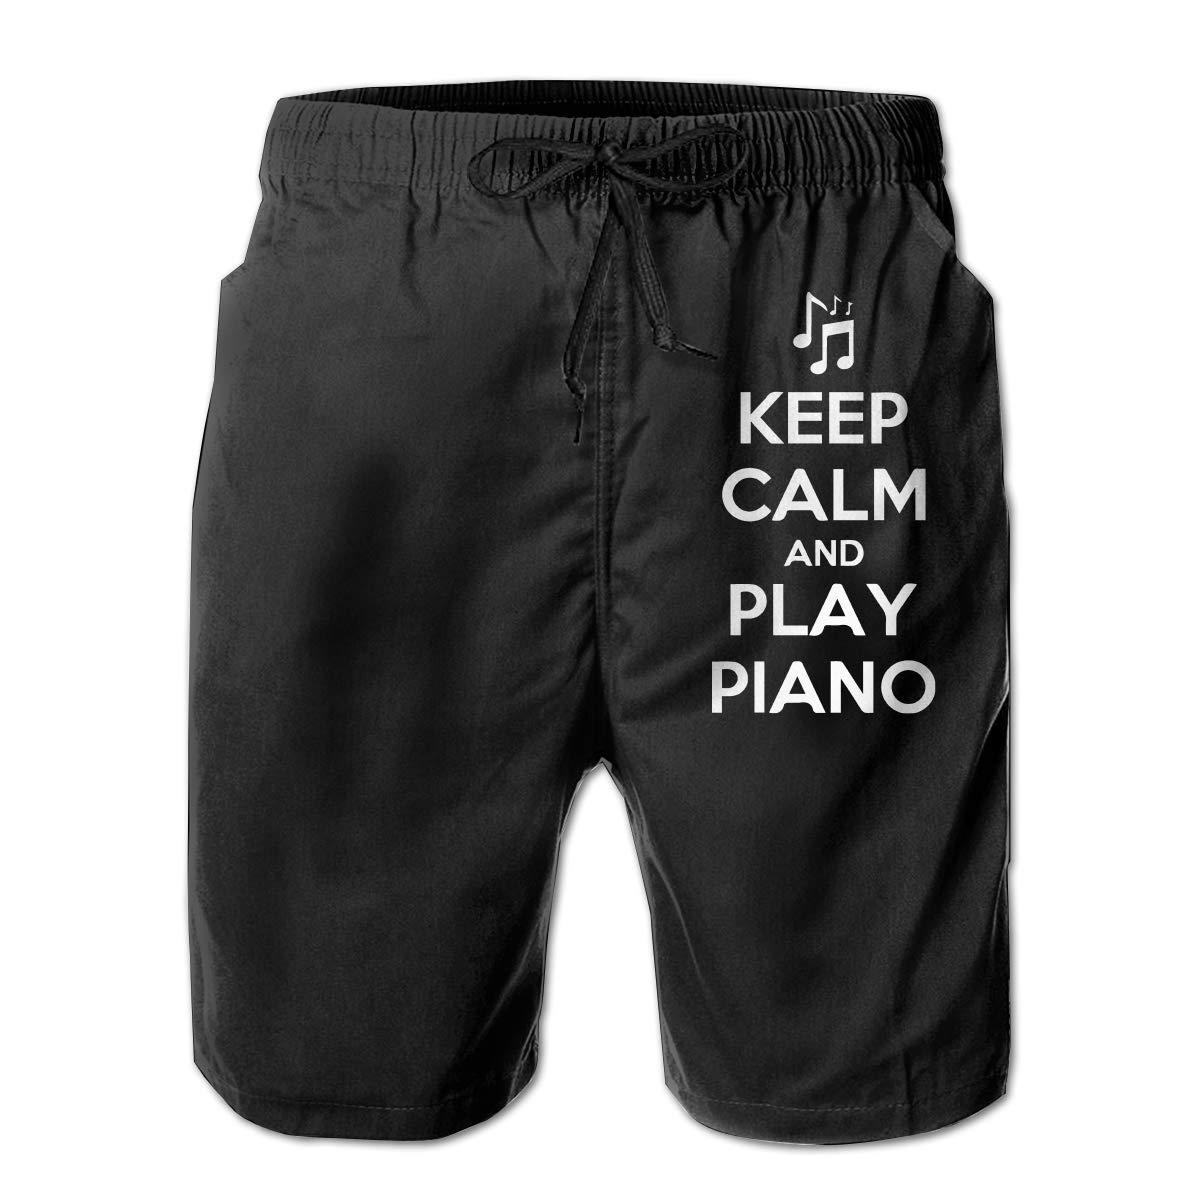 3D Printed Board Shorts with Pockets Yt92Pl@00 Mens 100/% Polyester Keep Calm and Play Piano Beachwear